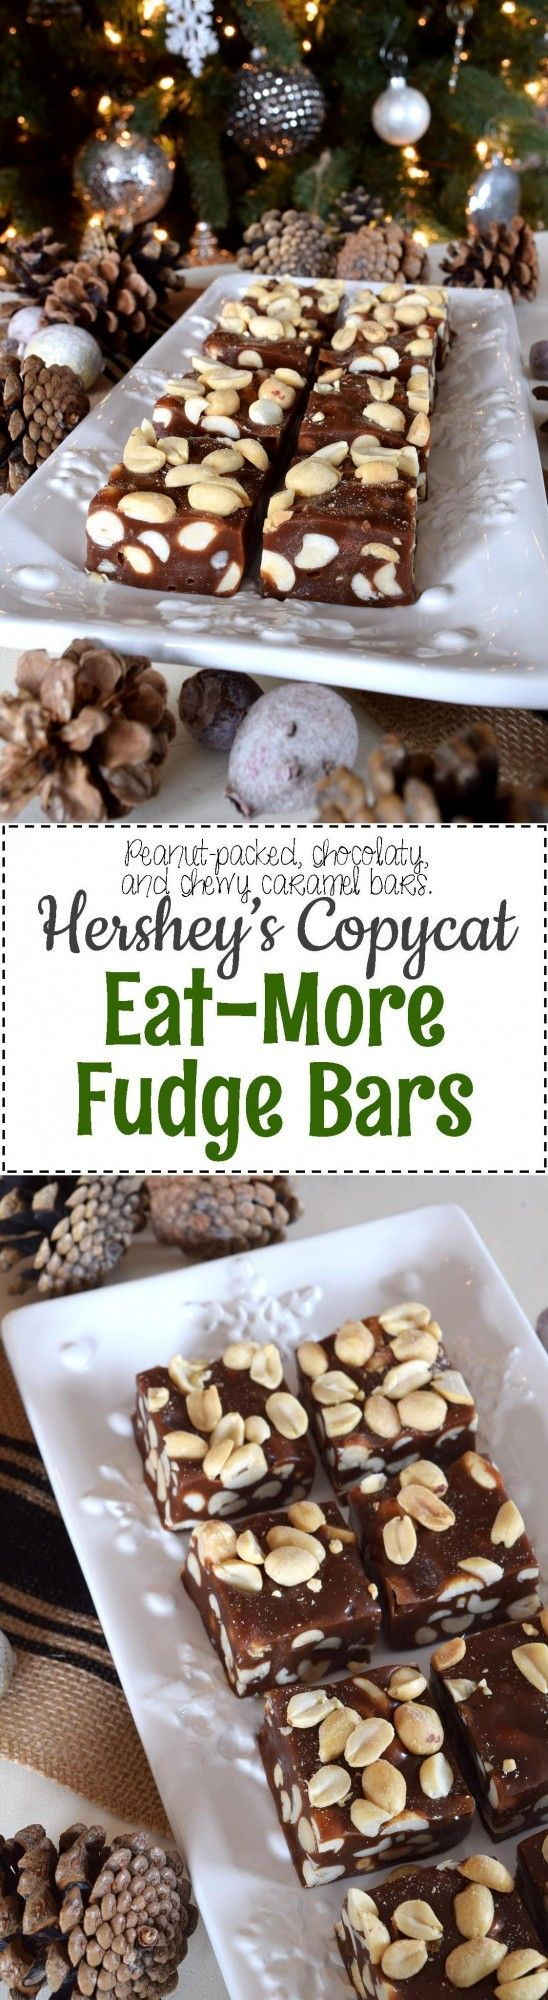 Hershey's Copycat Eat More Fudge Bars - Lord Byron's Kitchen